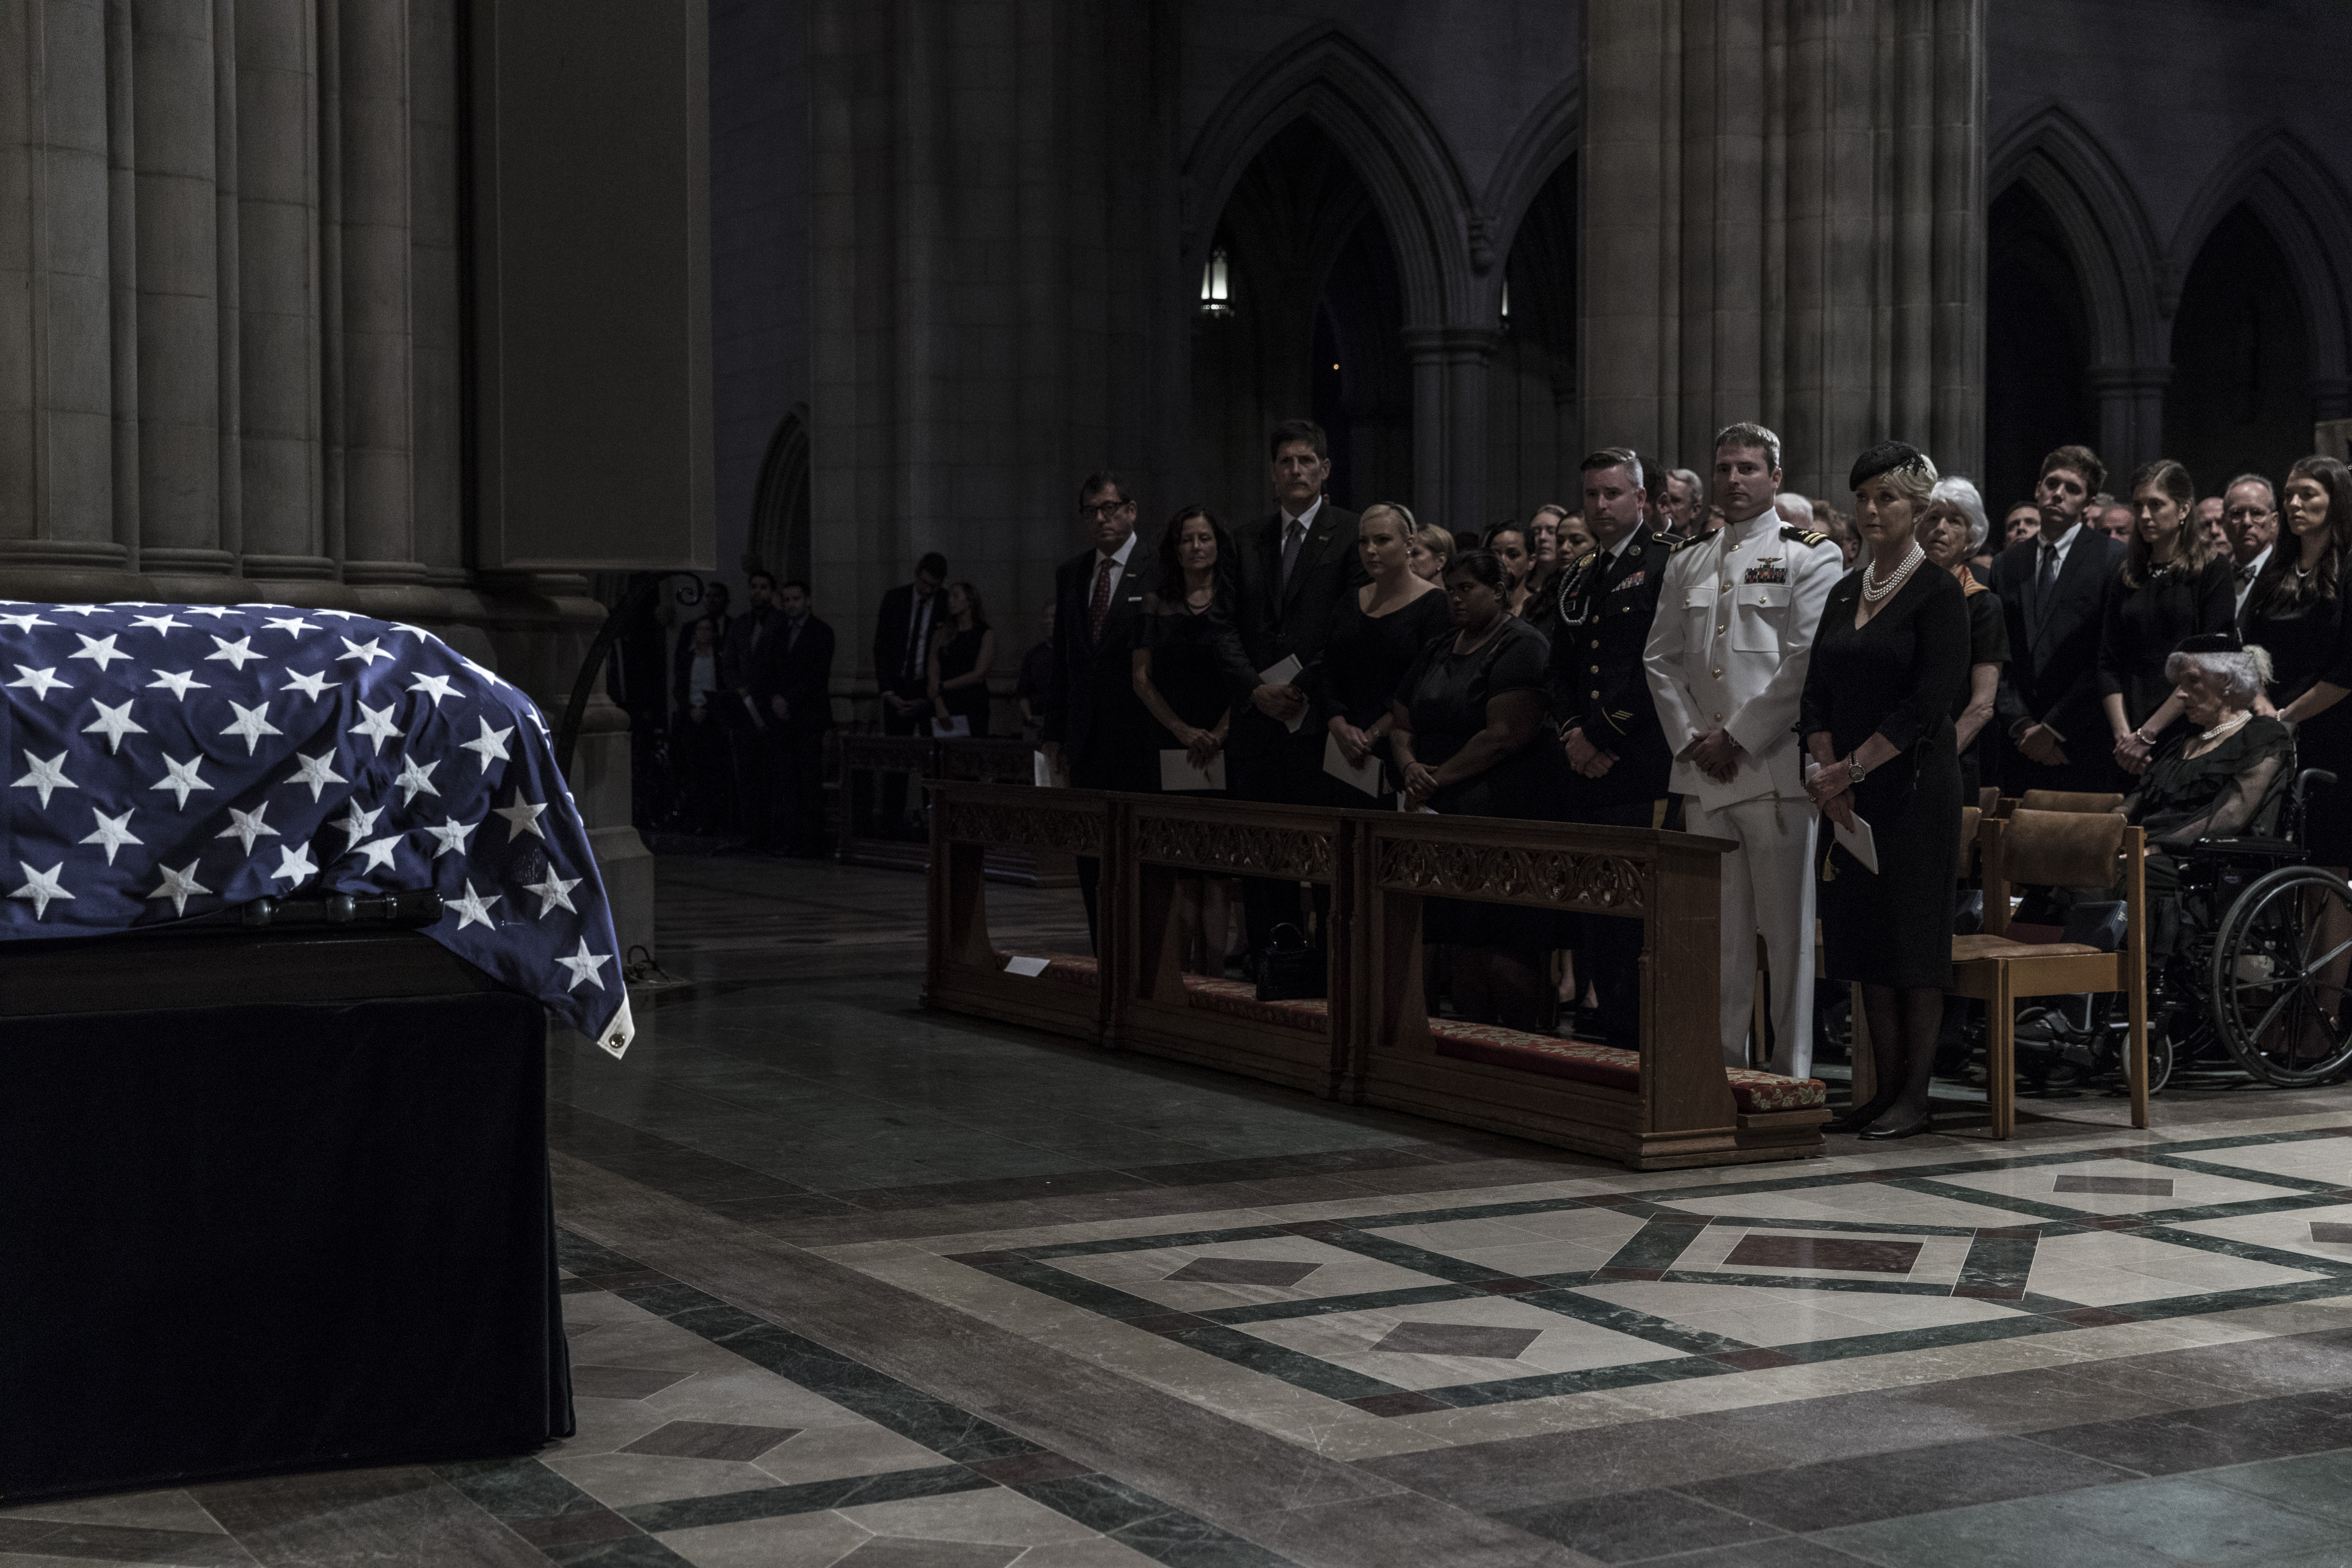 The McCain family at the memorial service for Sen. John McCain at the Washington National Cathedral on September 1, 2018.